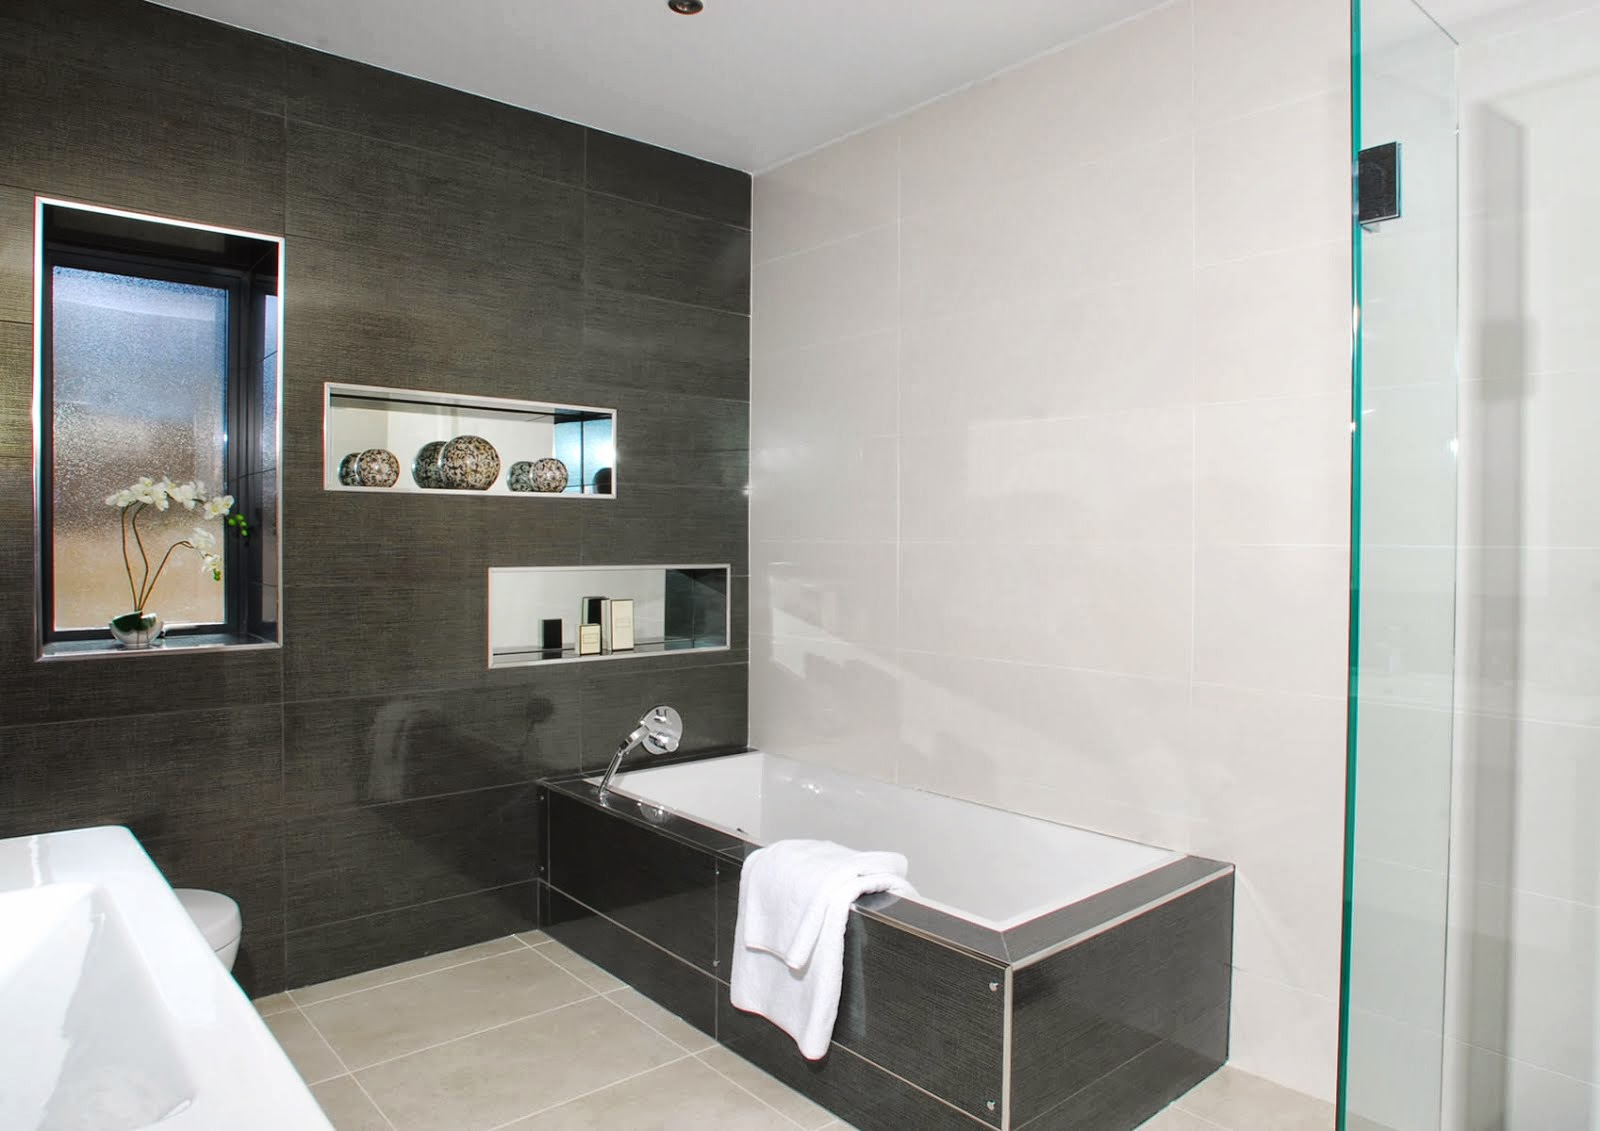 Bathroom design ideas uk for Bathroom designs photos ideas